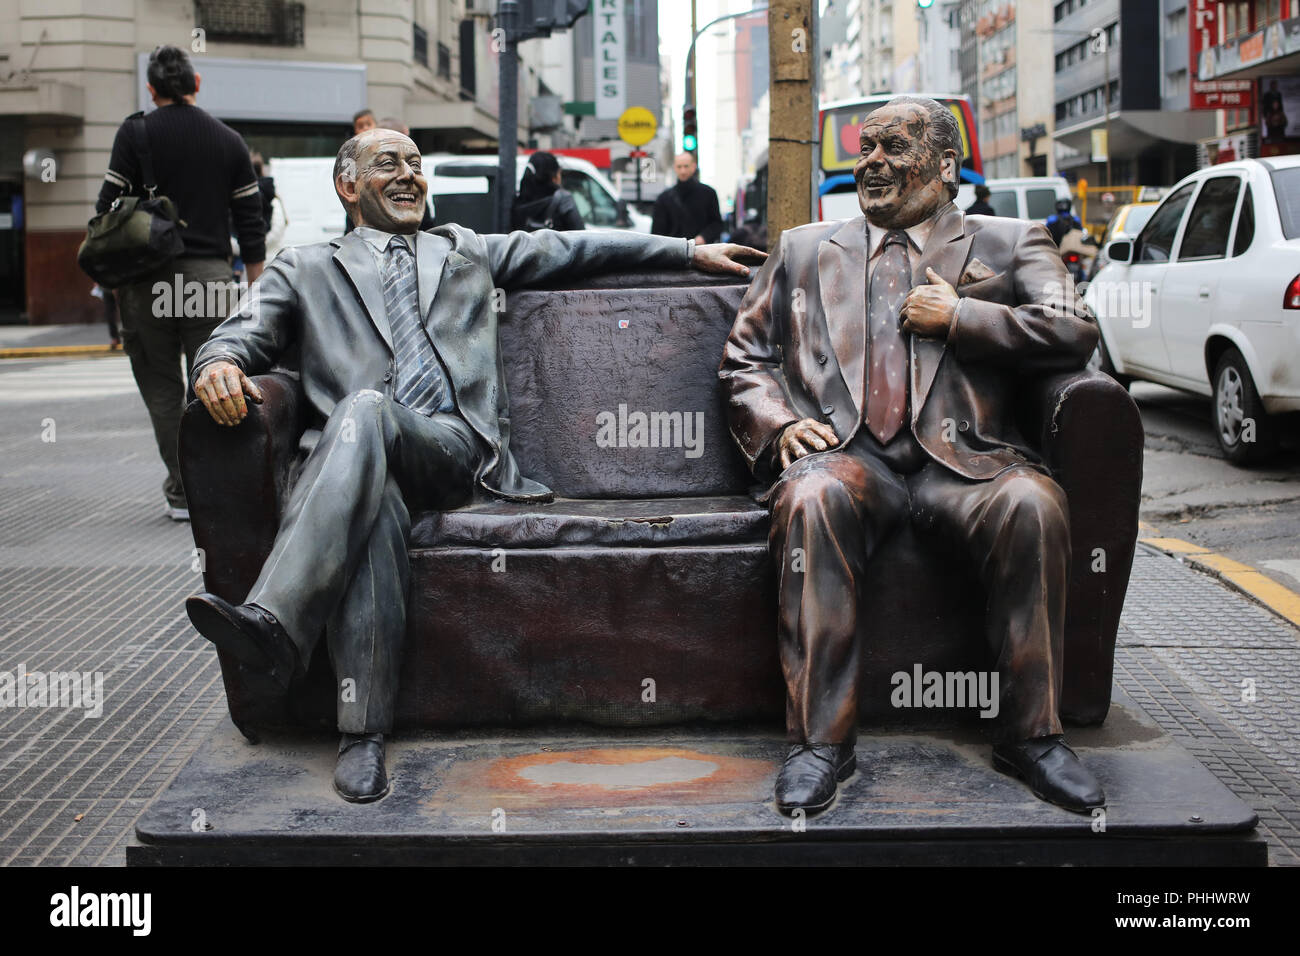 Olmedo and Potales statue, two historic comedians of argntina, placed in Avenida Corrientes in Buenos Aires Stock Photo